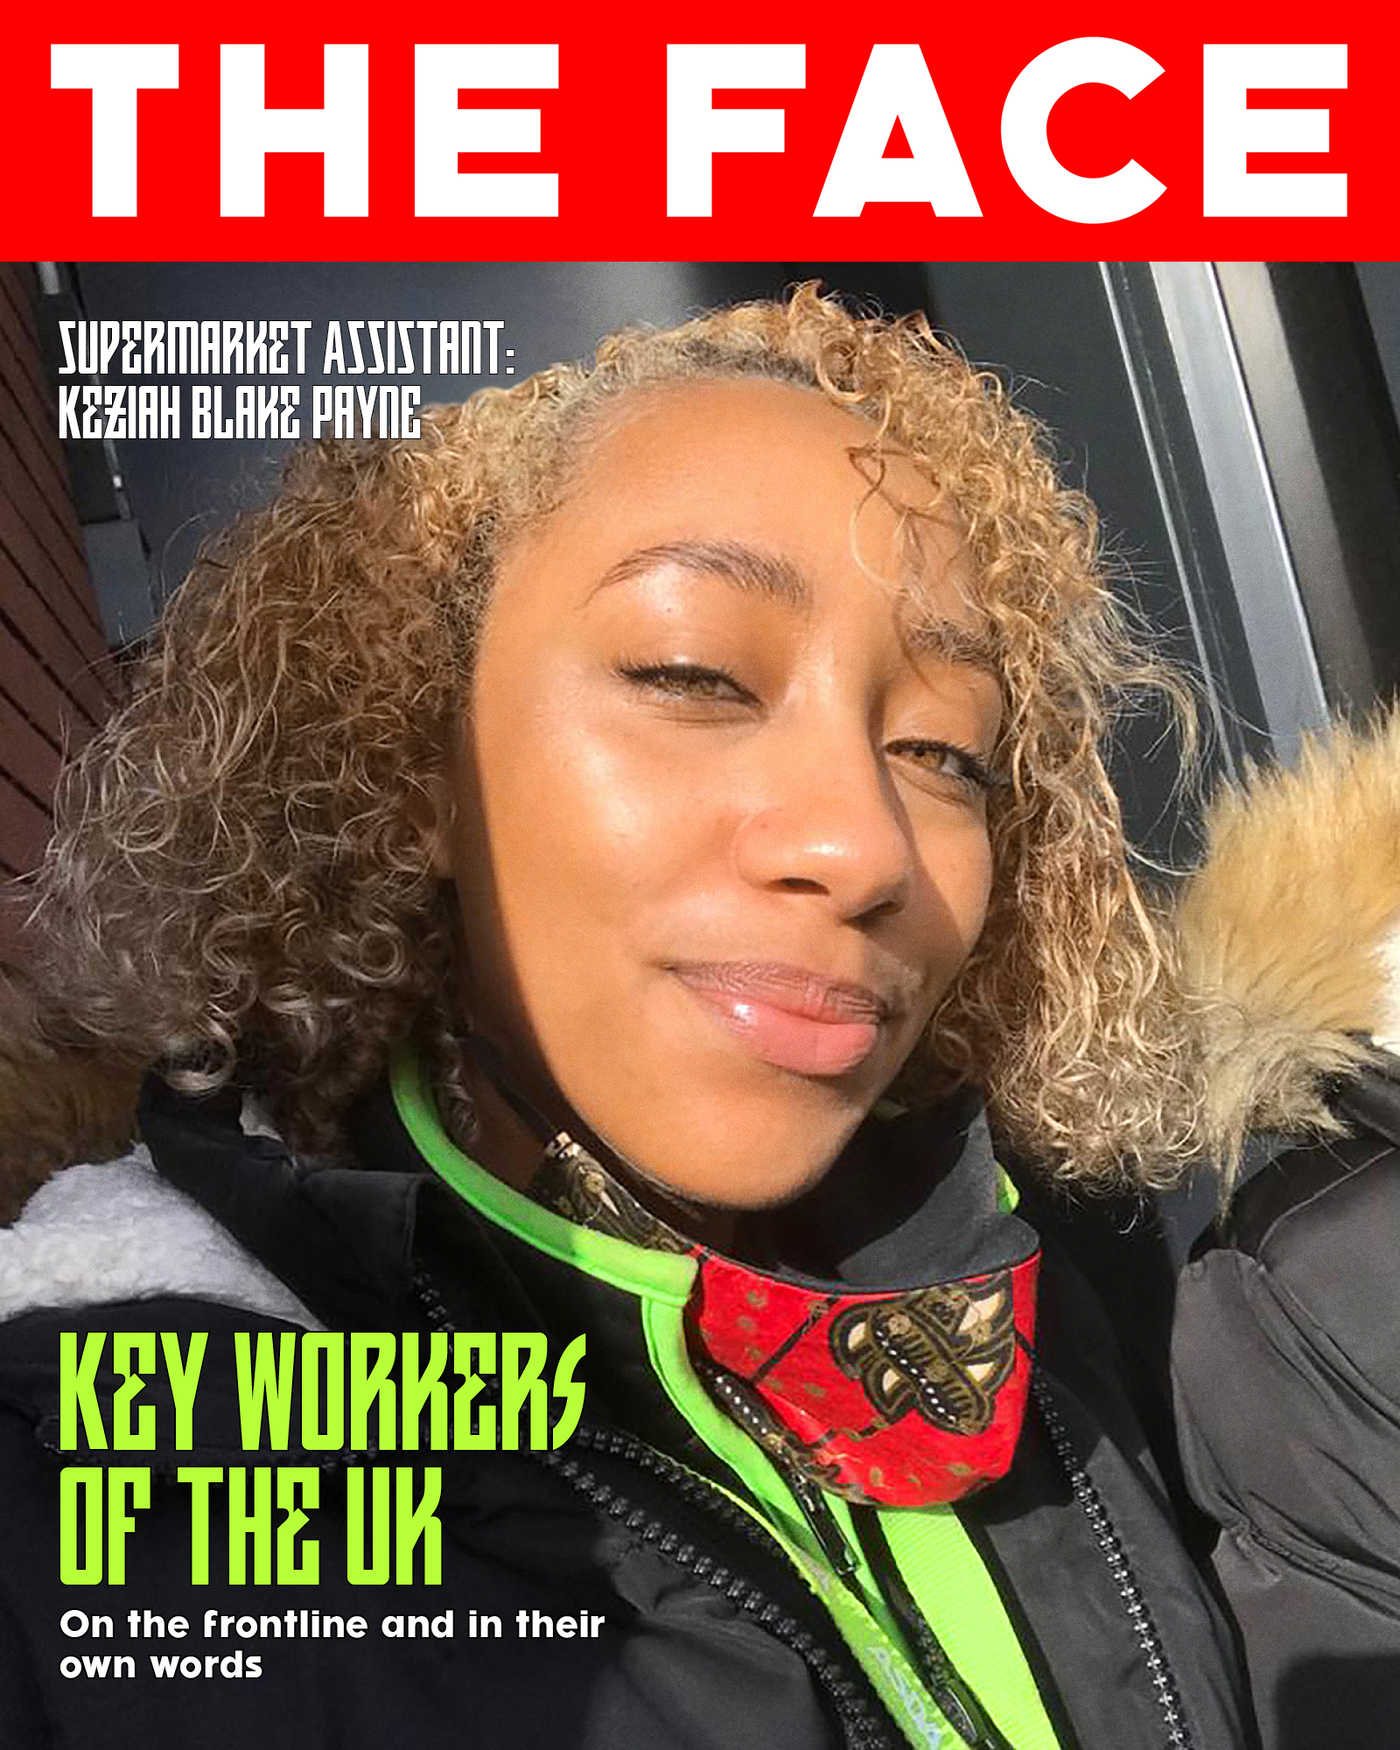 The Face magazine put frontline key worker, 20-year-old supermarket assistant Keziah on the cover among others.